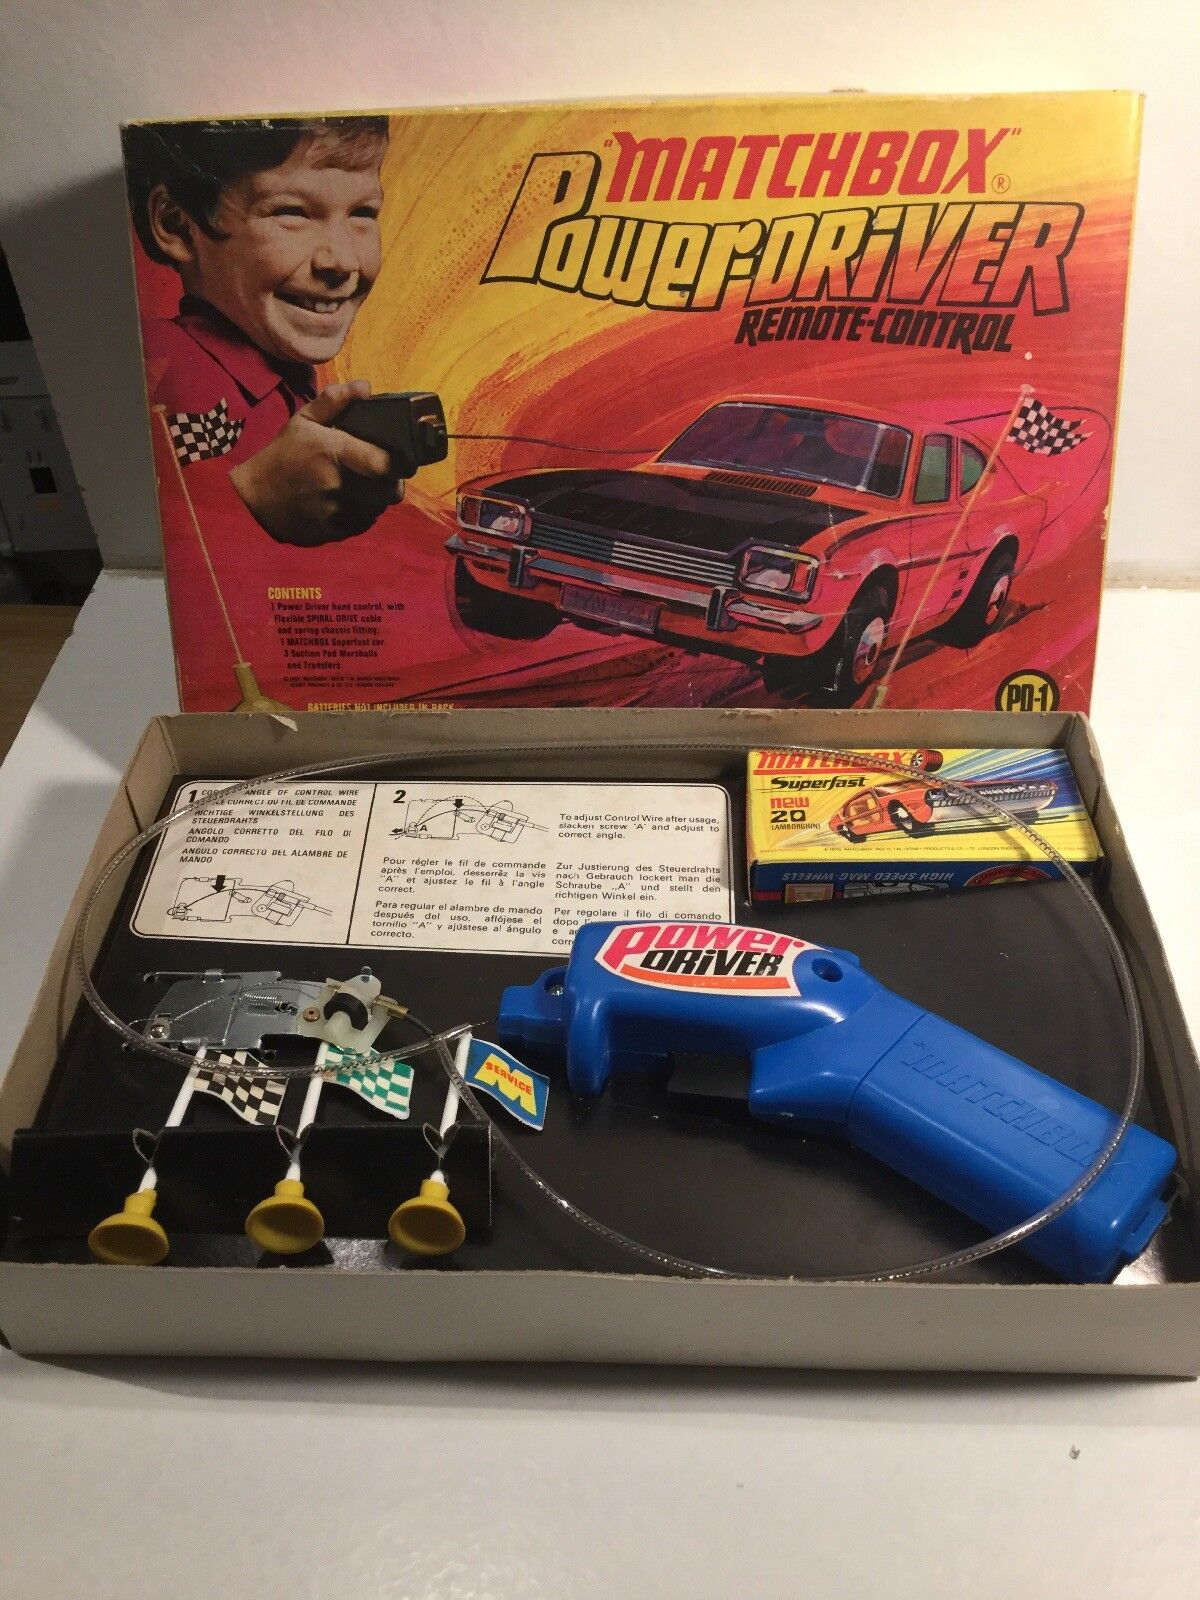 Vintage 1970's Matchbox Superfast Power Driver Boxed, Complete & Working